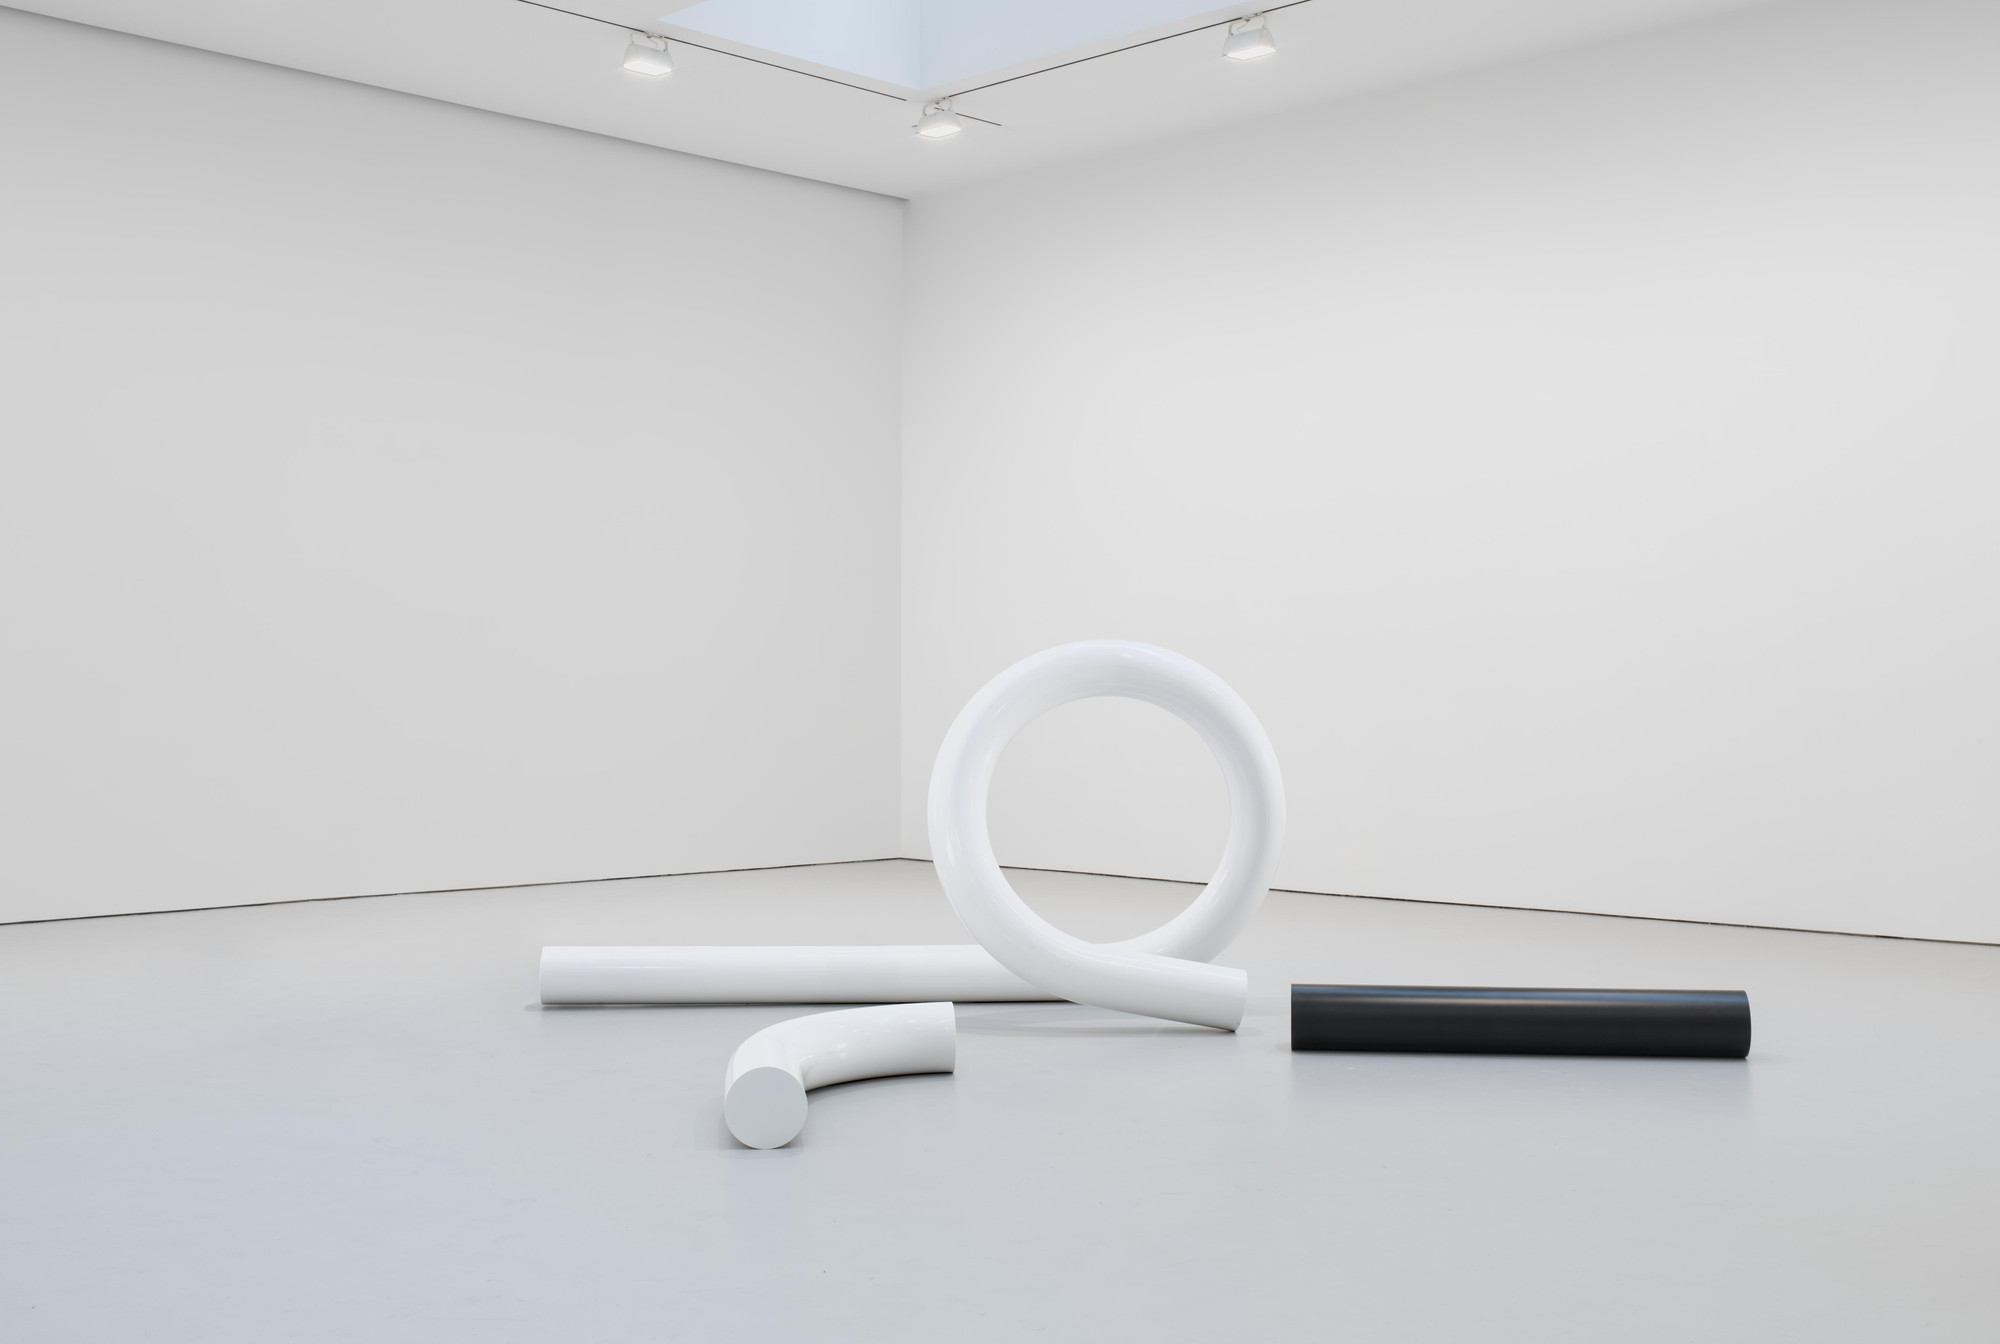 Carol Bove. The White Tubular Glyph. 2013